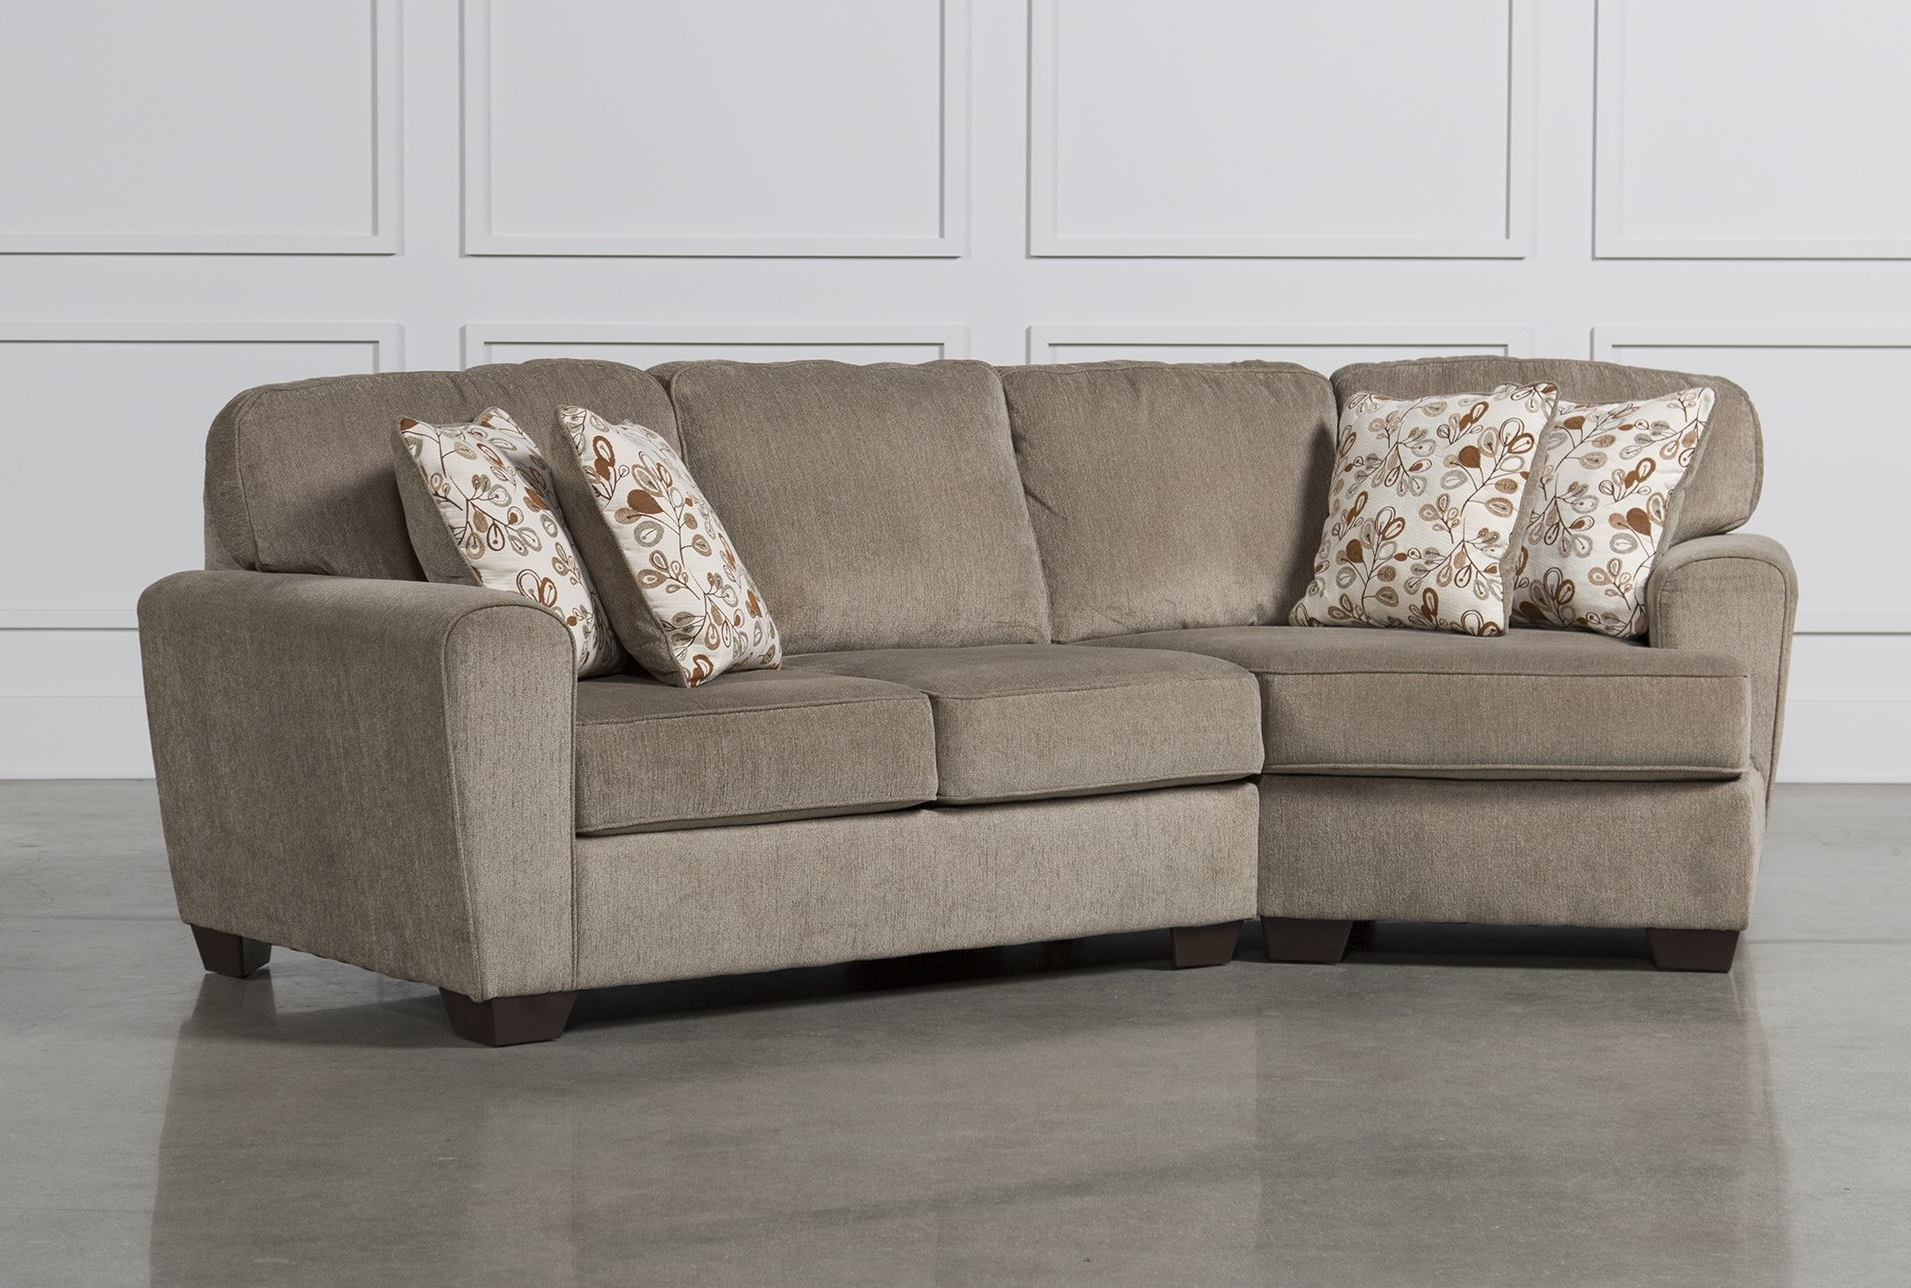 Sectional Sofas With Cuddler Chaise Pertaining To Current Latest Trend Of Sectional Sofa With Cuddler Chaise 81 In Eco (View 9 of 15)